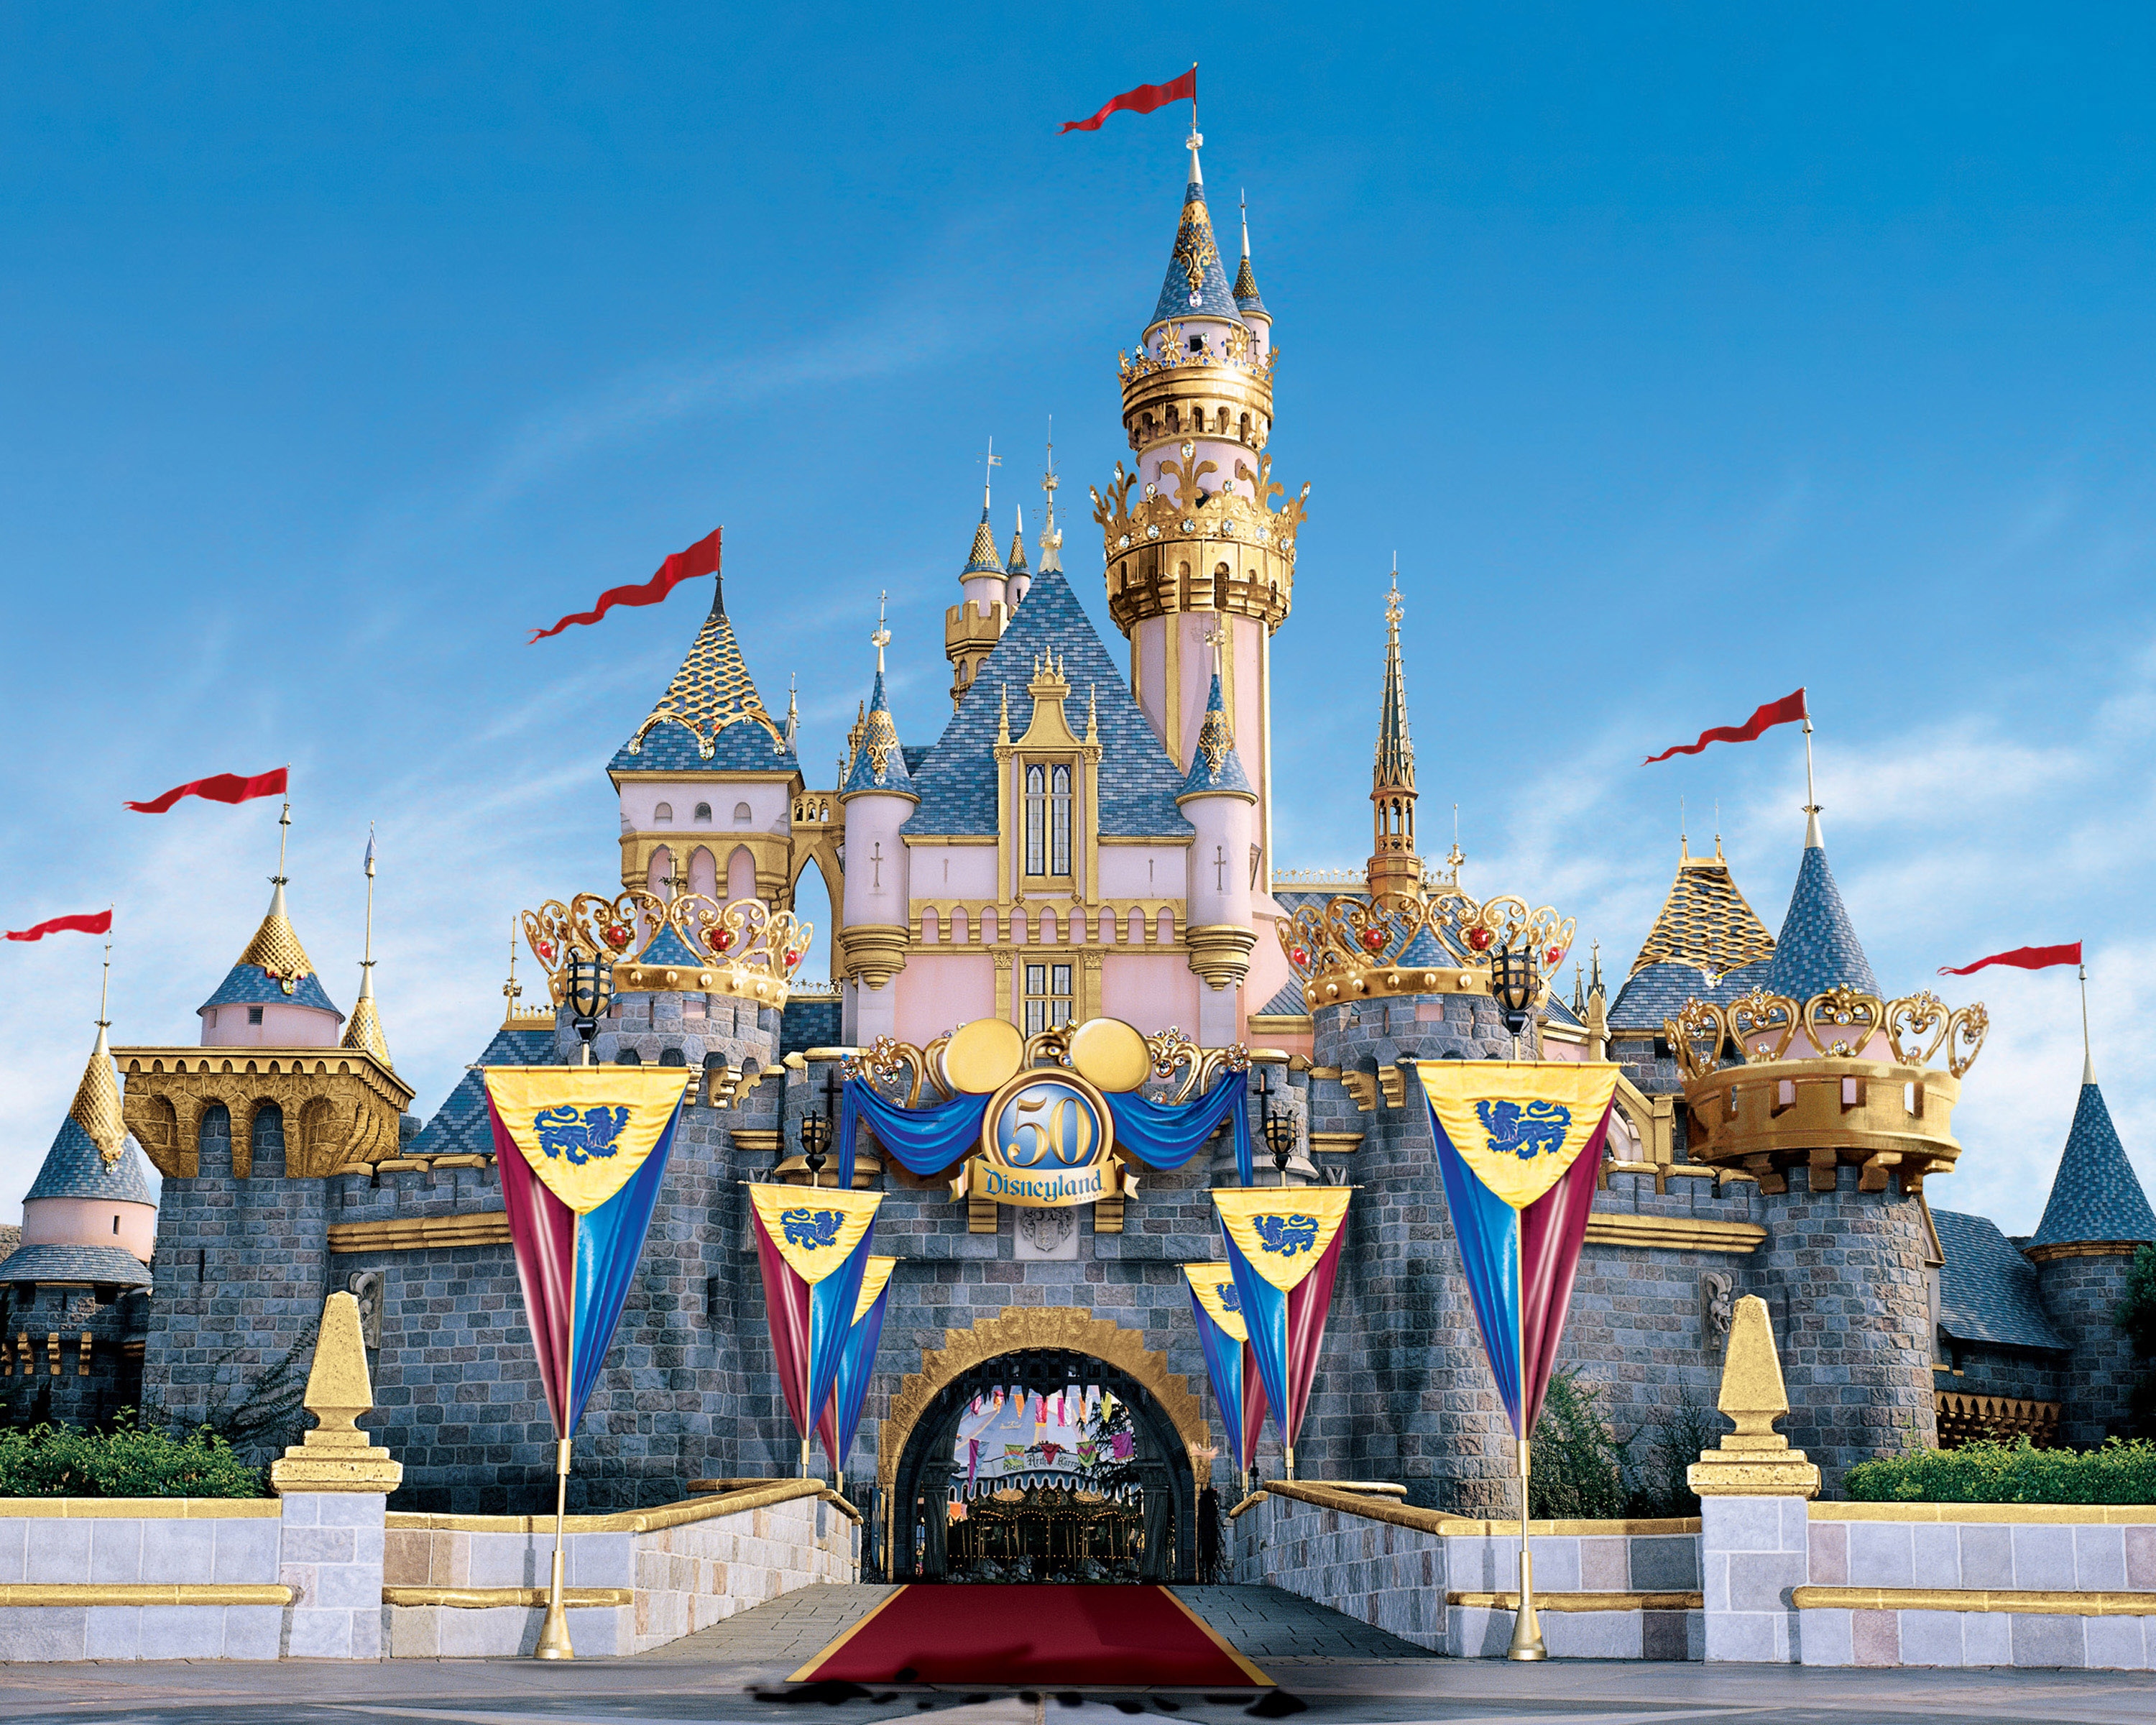 compare and contrast disney world v Compare contrast disney essay submitted by plinzy622 words: 997 pages: 4 open document paris linzy dubose eng101/tu-th 1:30 february 22, 2015.